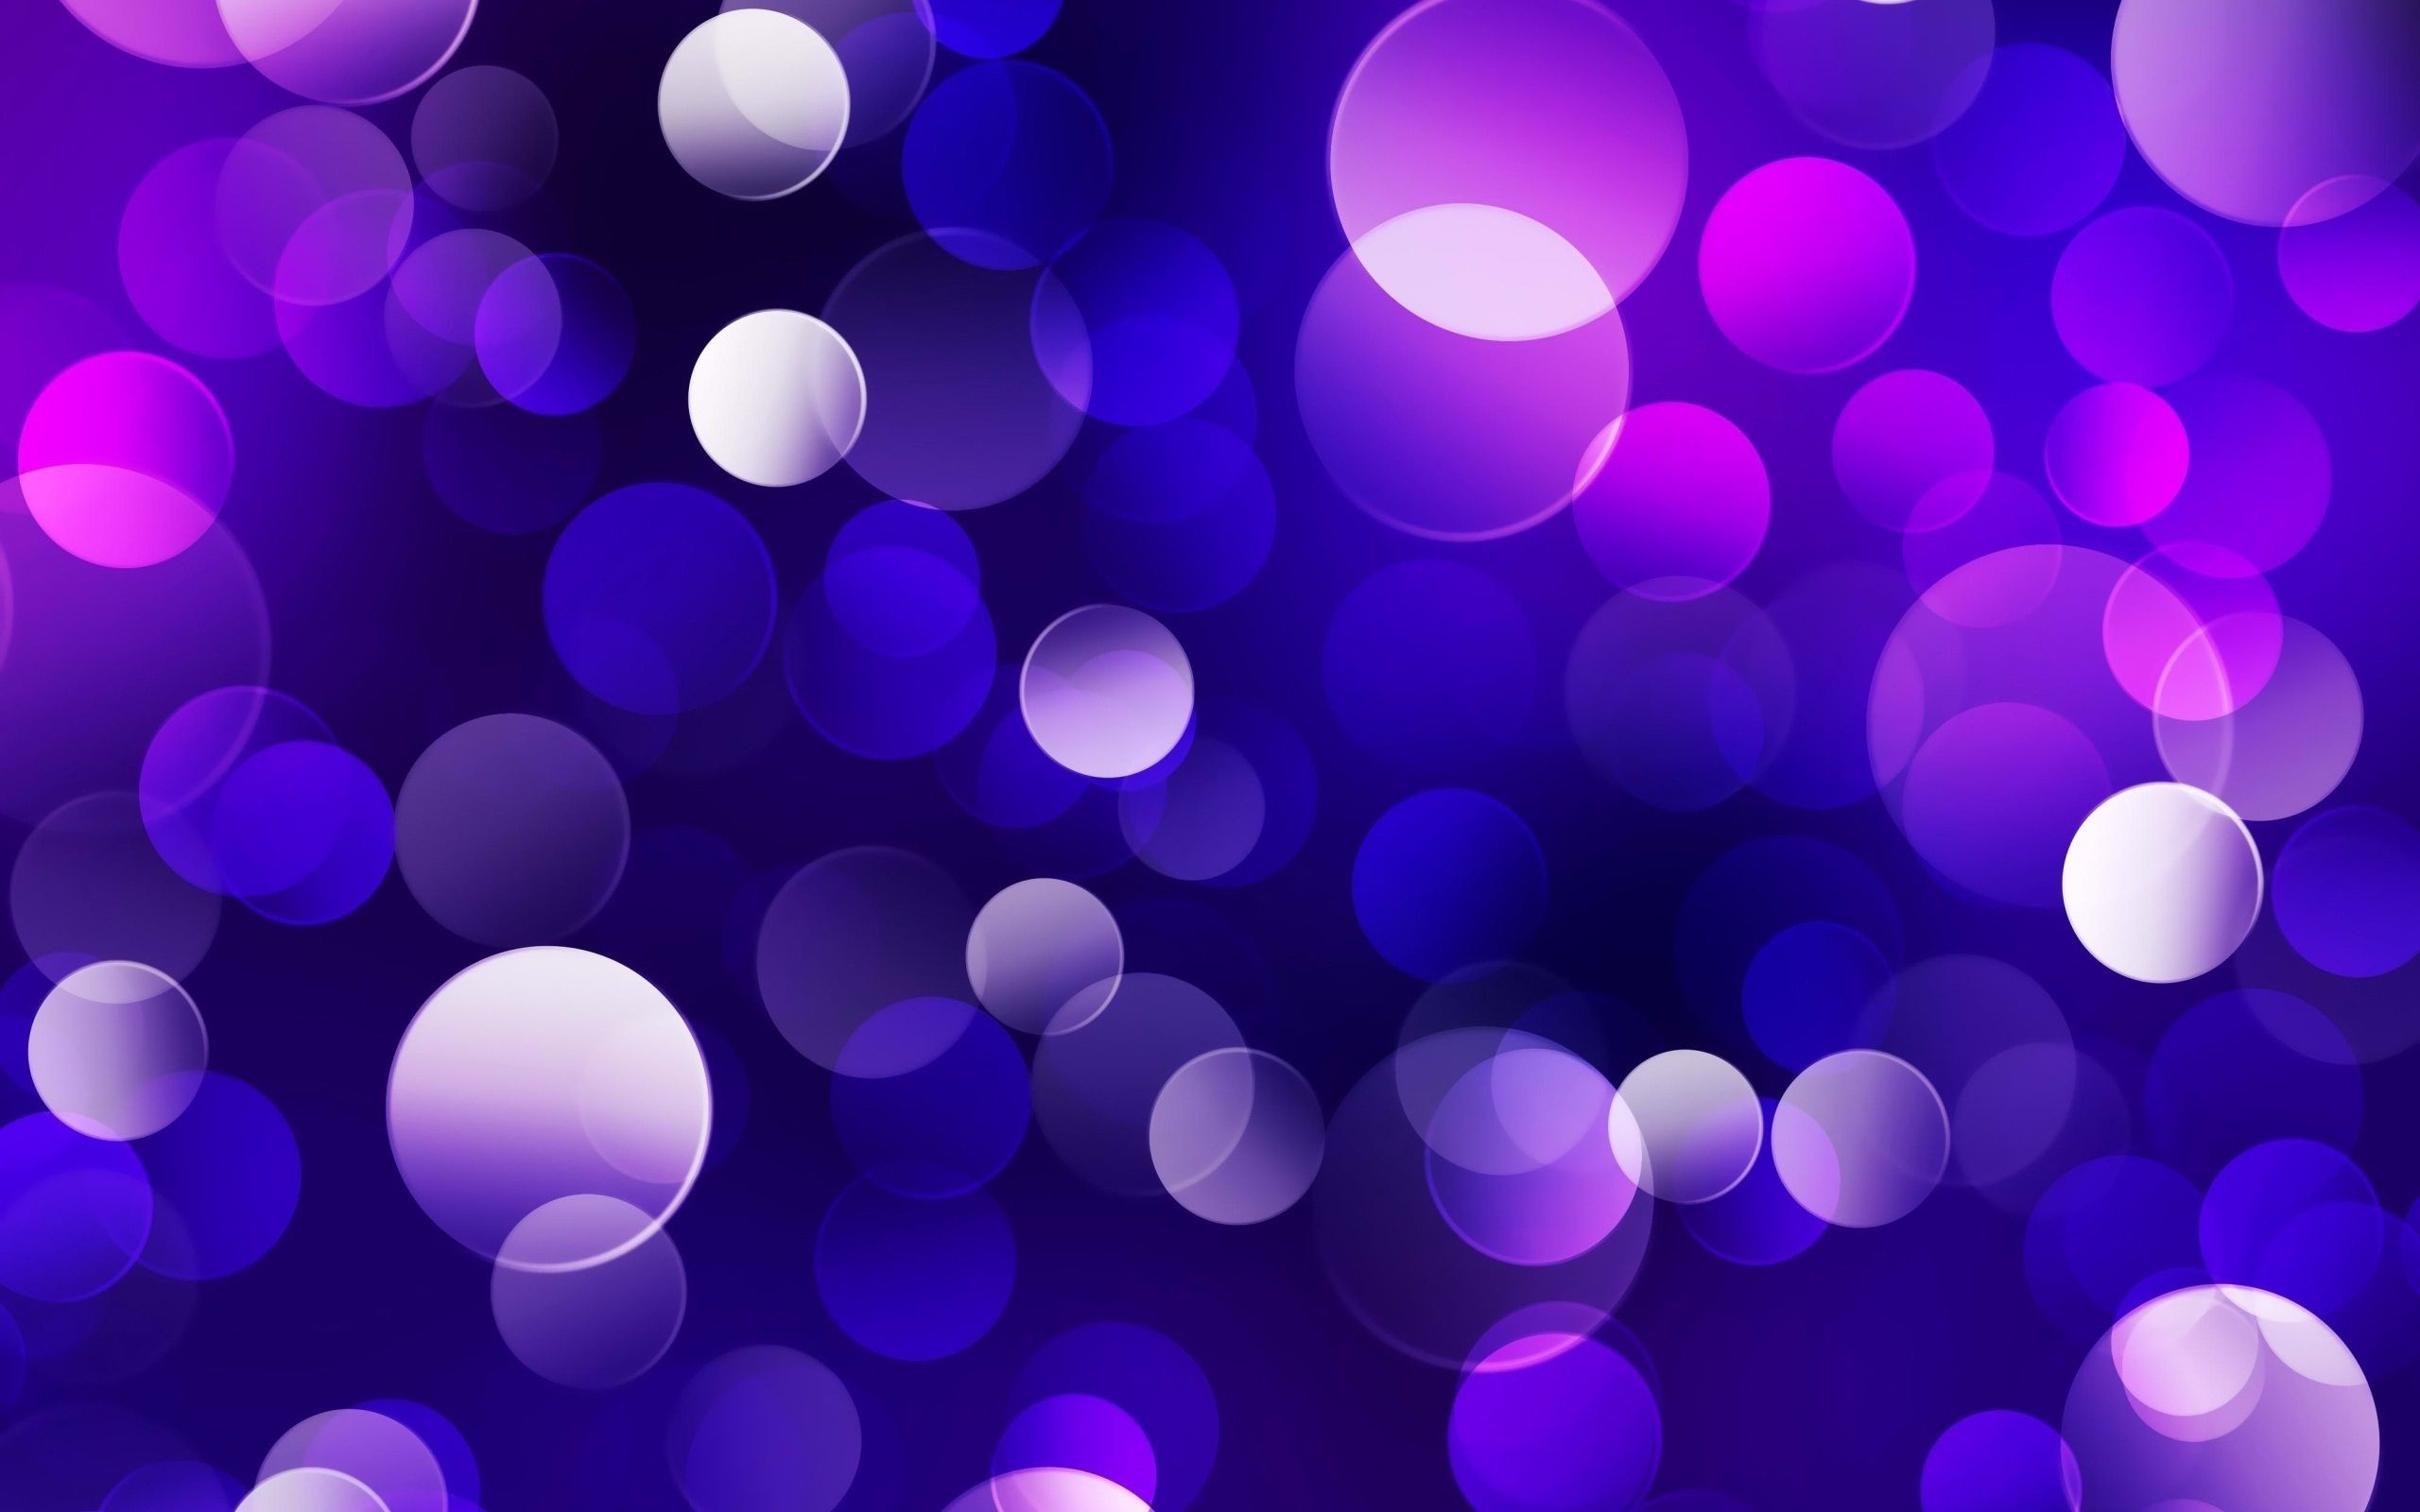 2560x1600 Girly Purple Wallpaper High Resolution Sdeerwallpaper